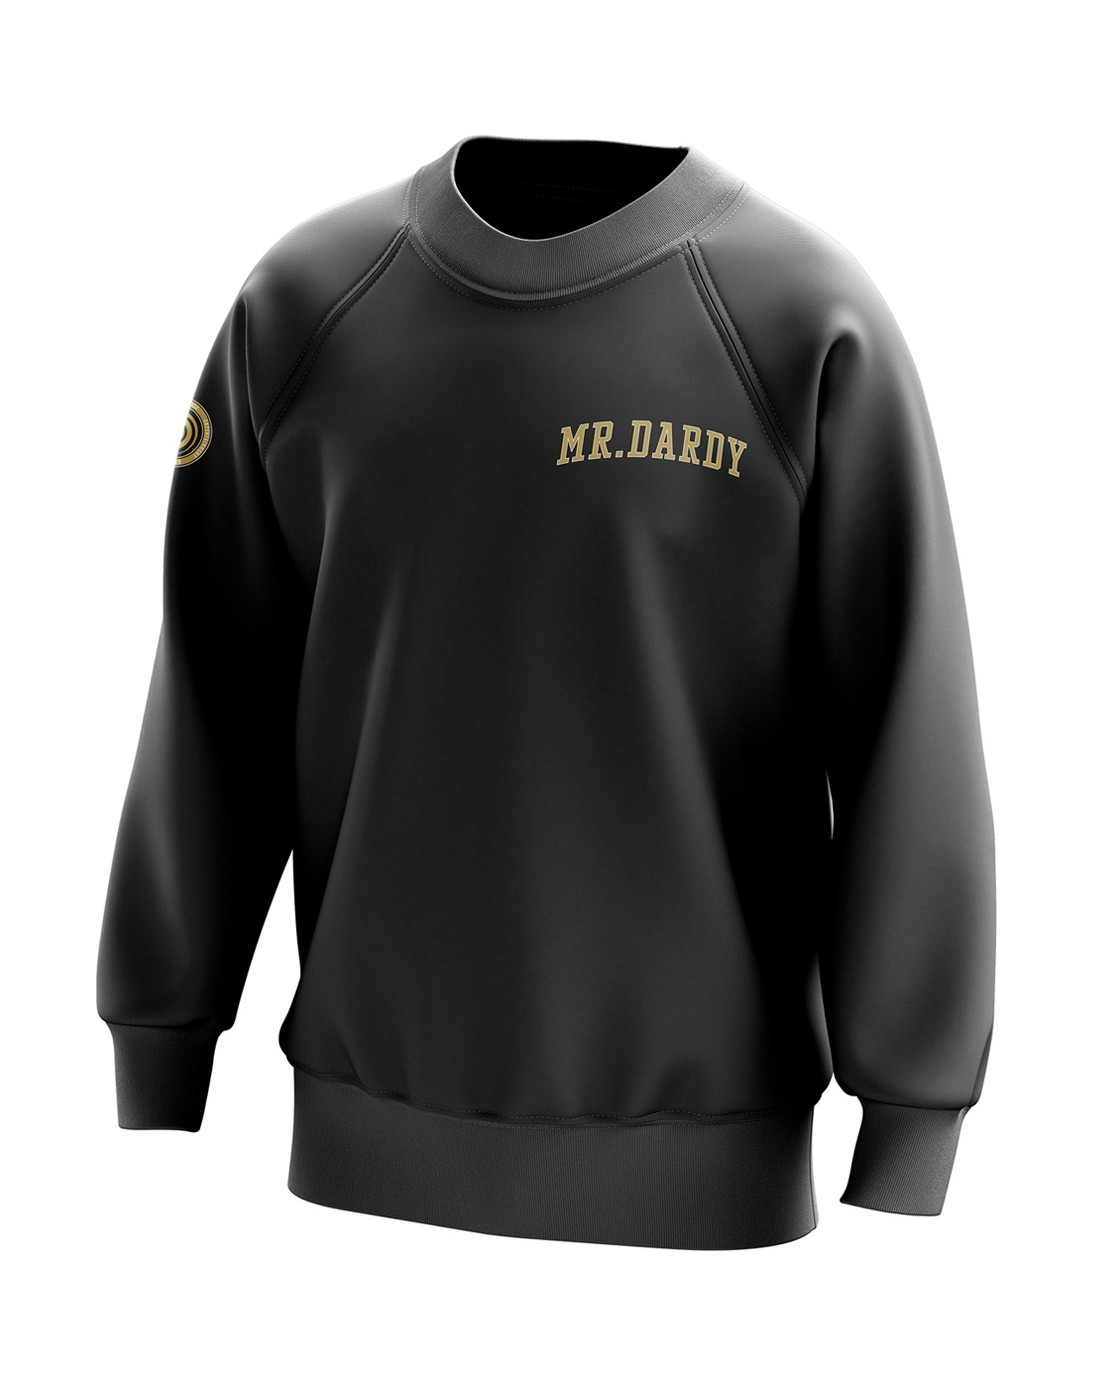 DARDAN SWEATER MR.DARDY GOLD